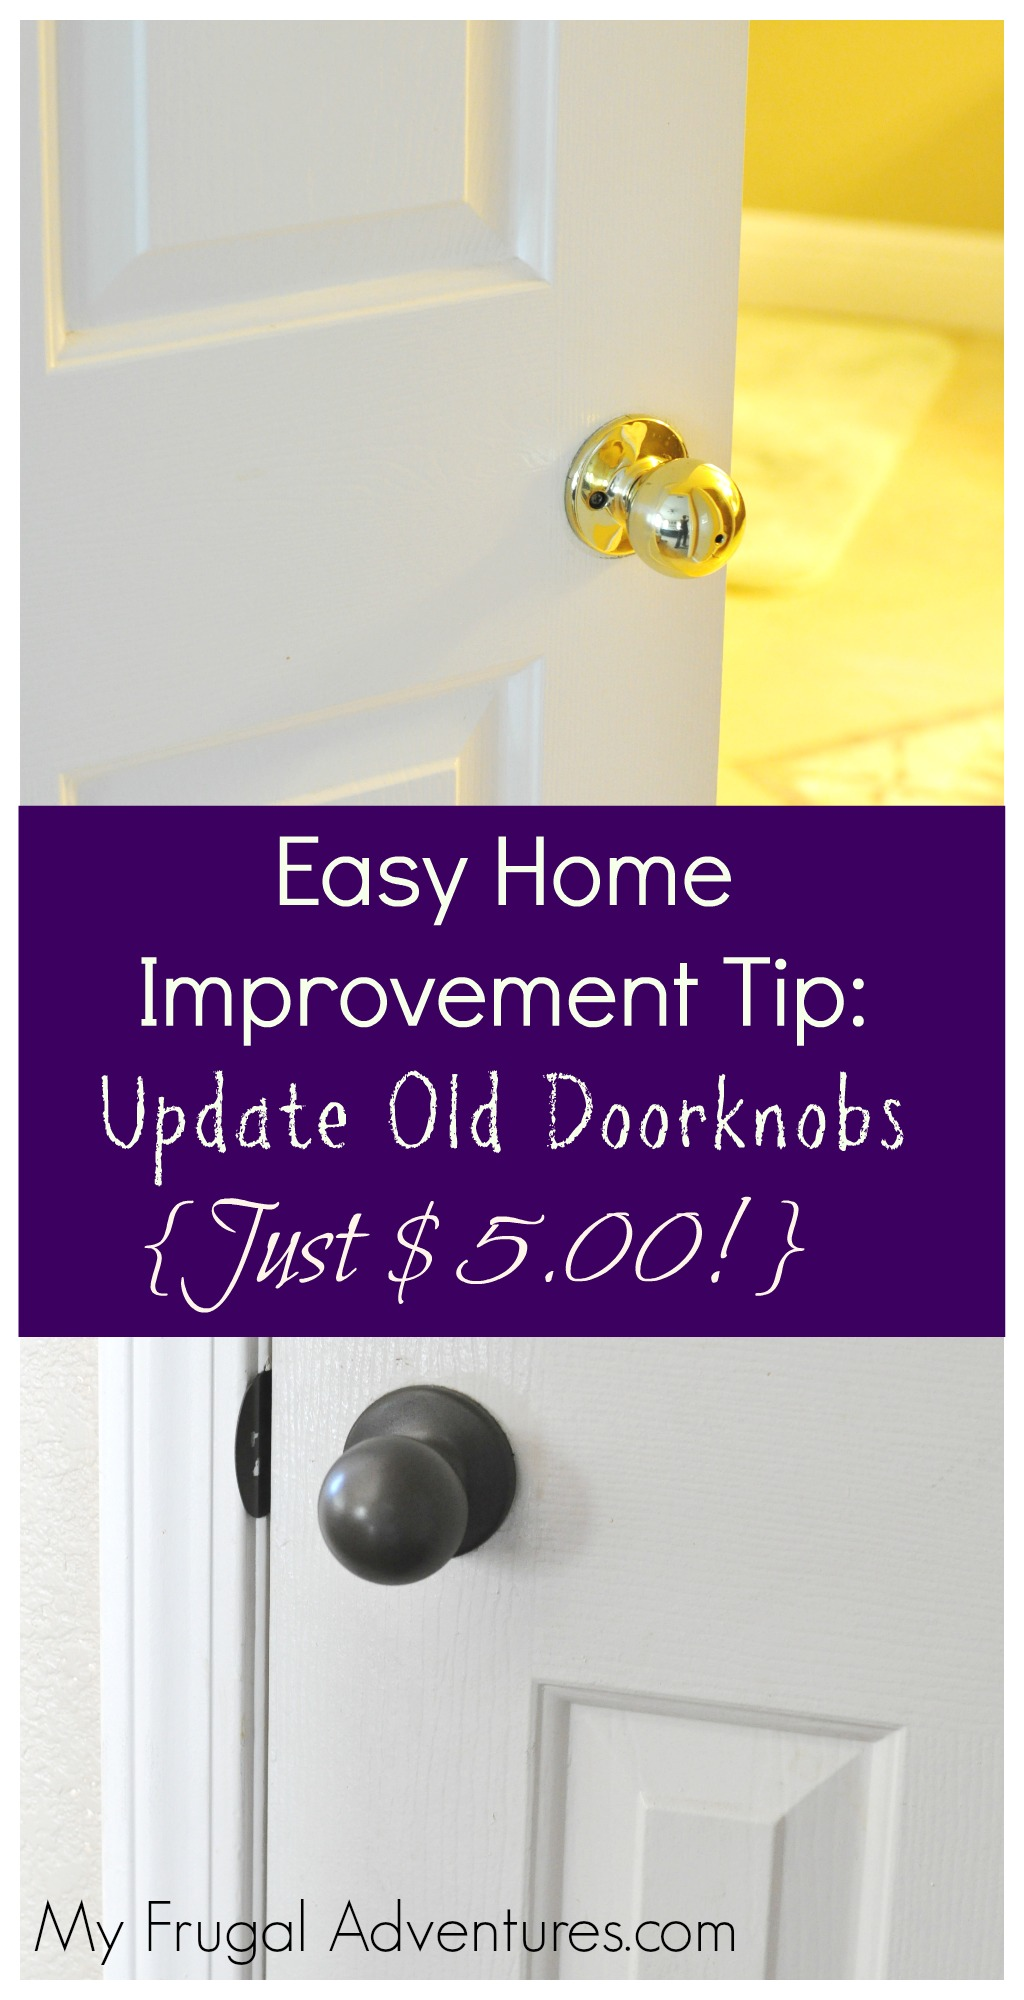 Cheap \u0026 Easy Home Improvement Tip: Custom Painted Doorknobs - My Frugal Adventures